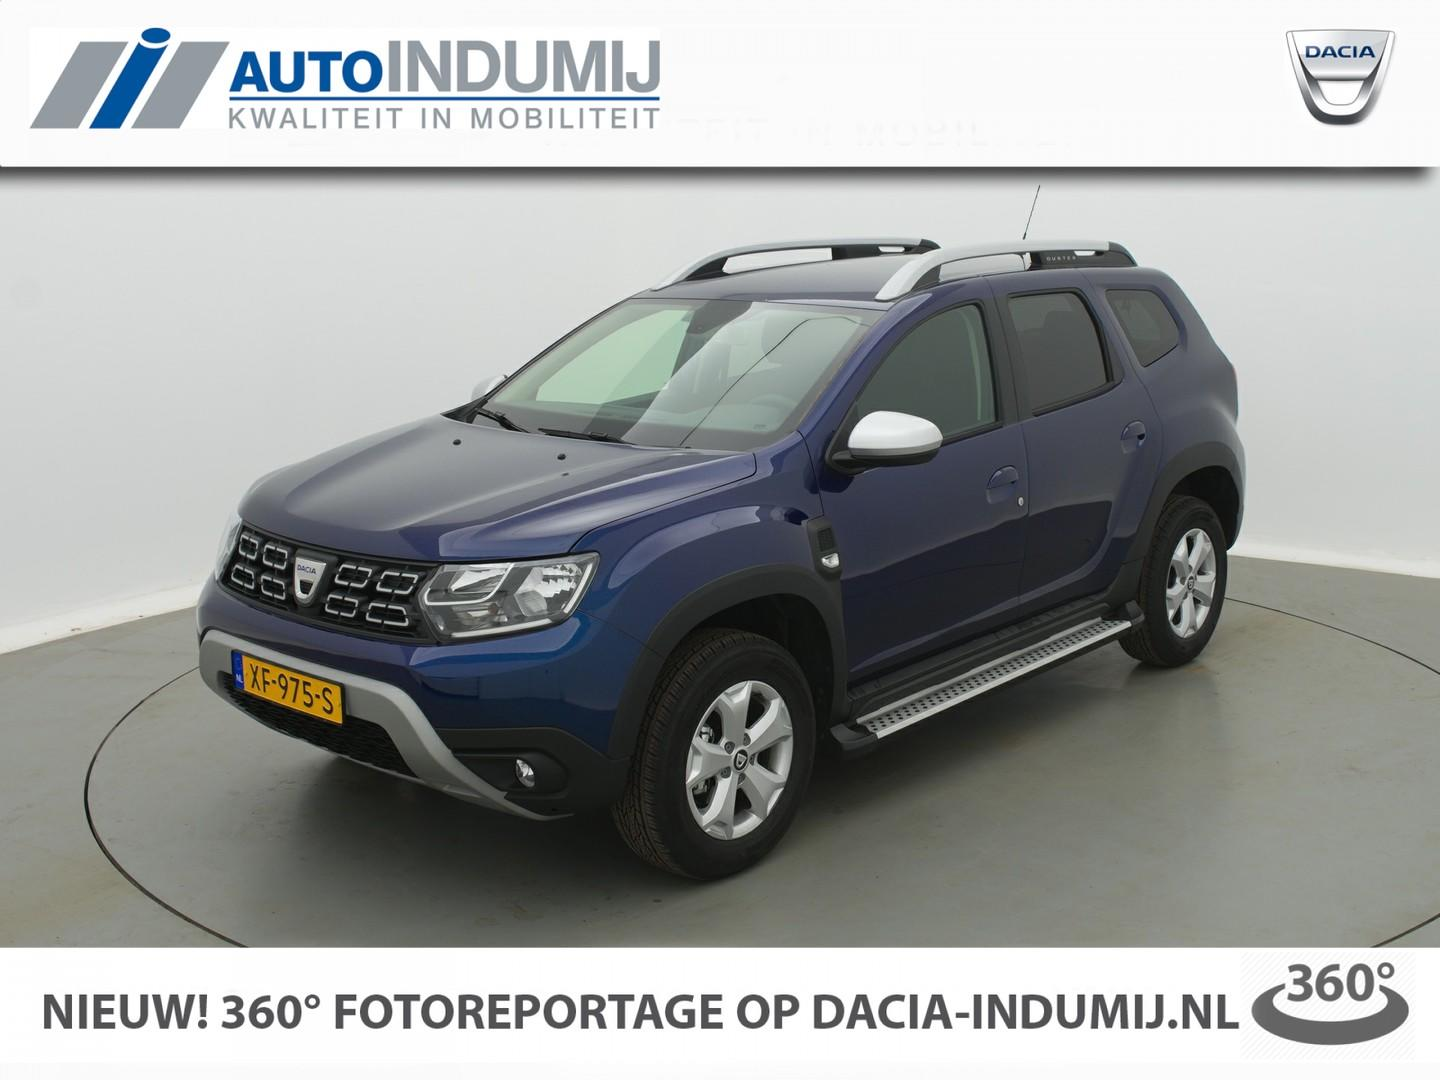 Dacia Duster Tce 125 comfort // pack look // navi + multimediasystem // side bars